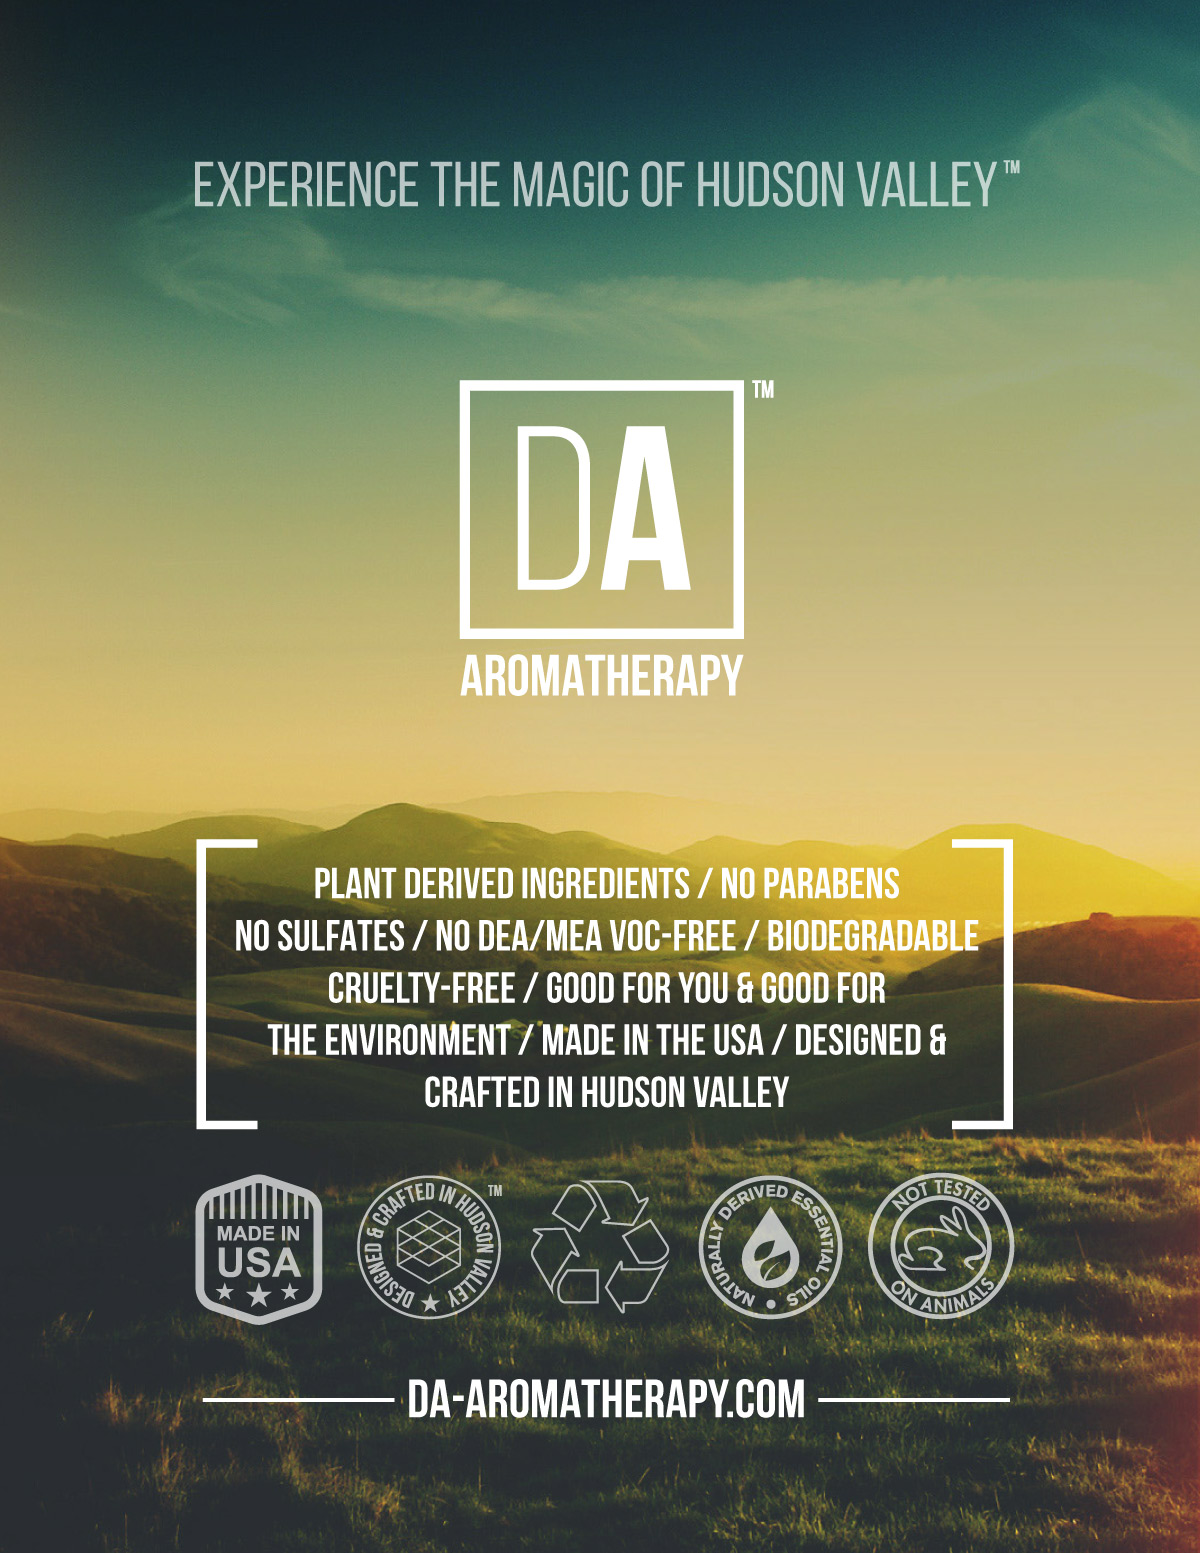 DA Aromatherapy Collection by Duncan Avenue